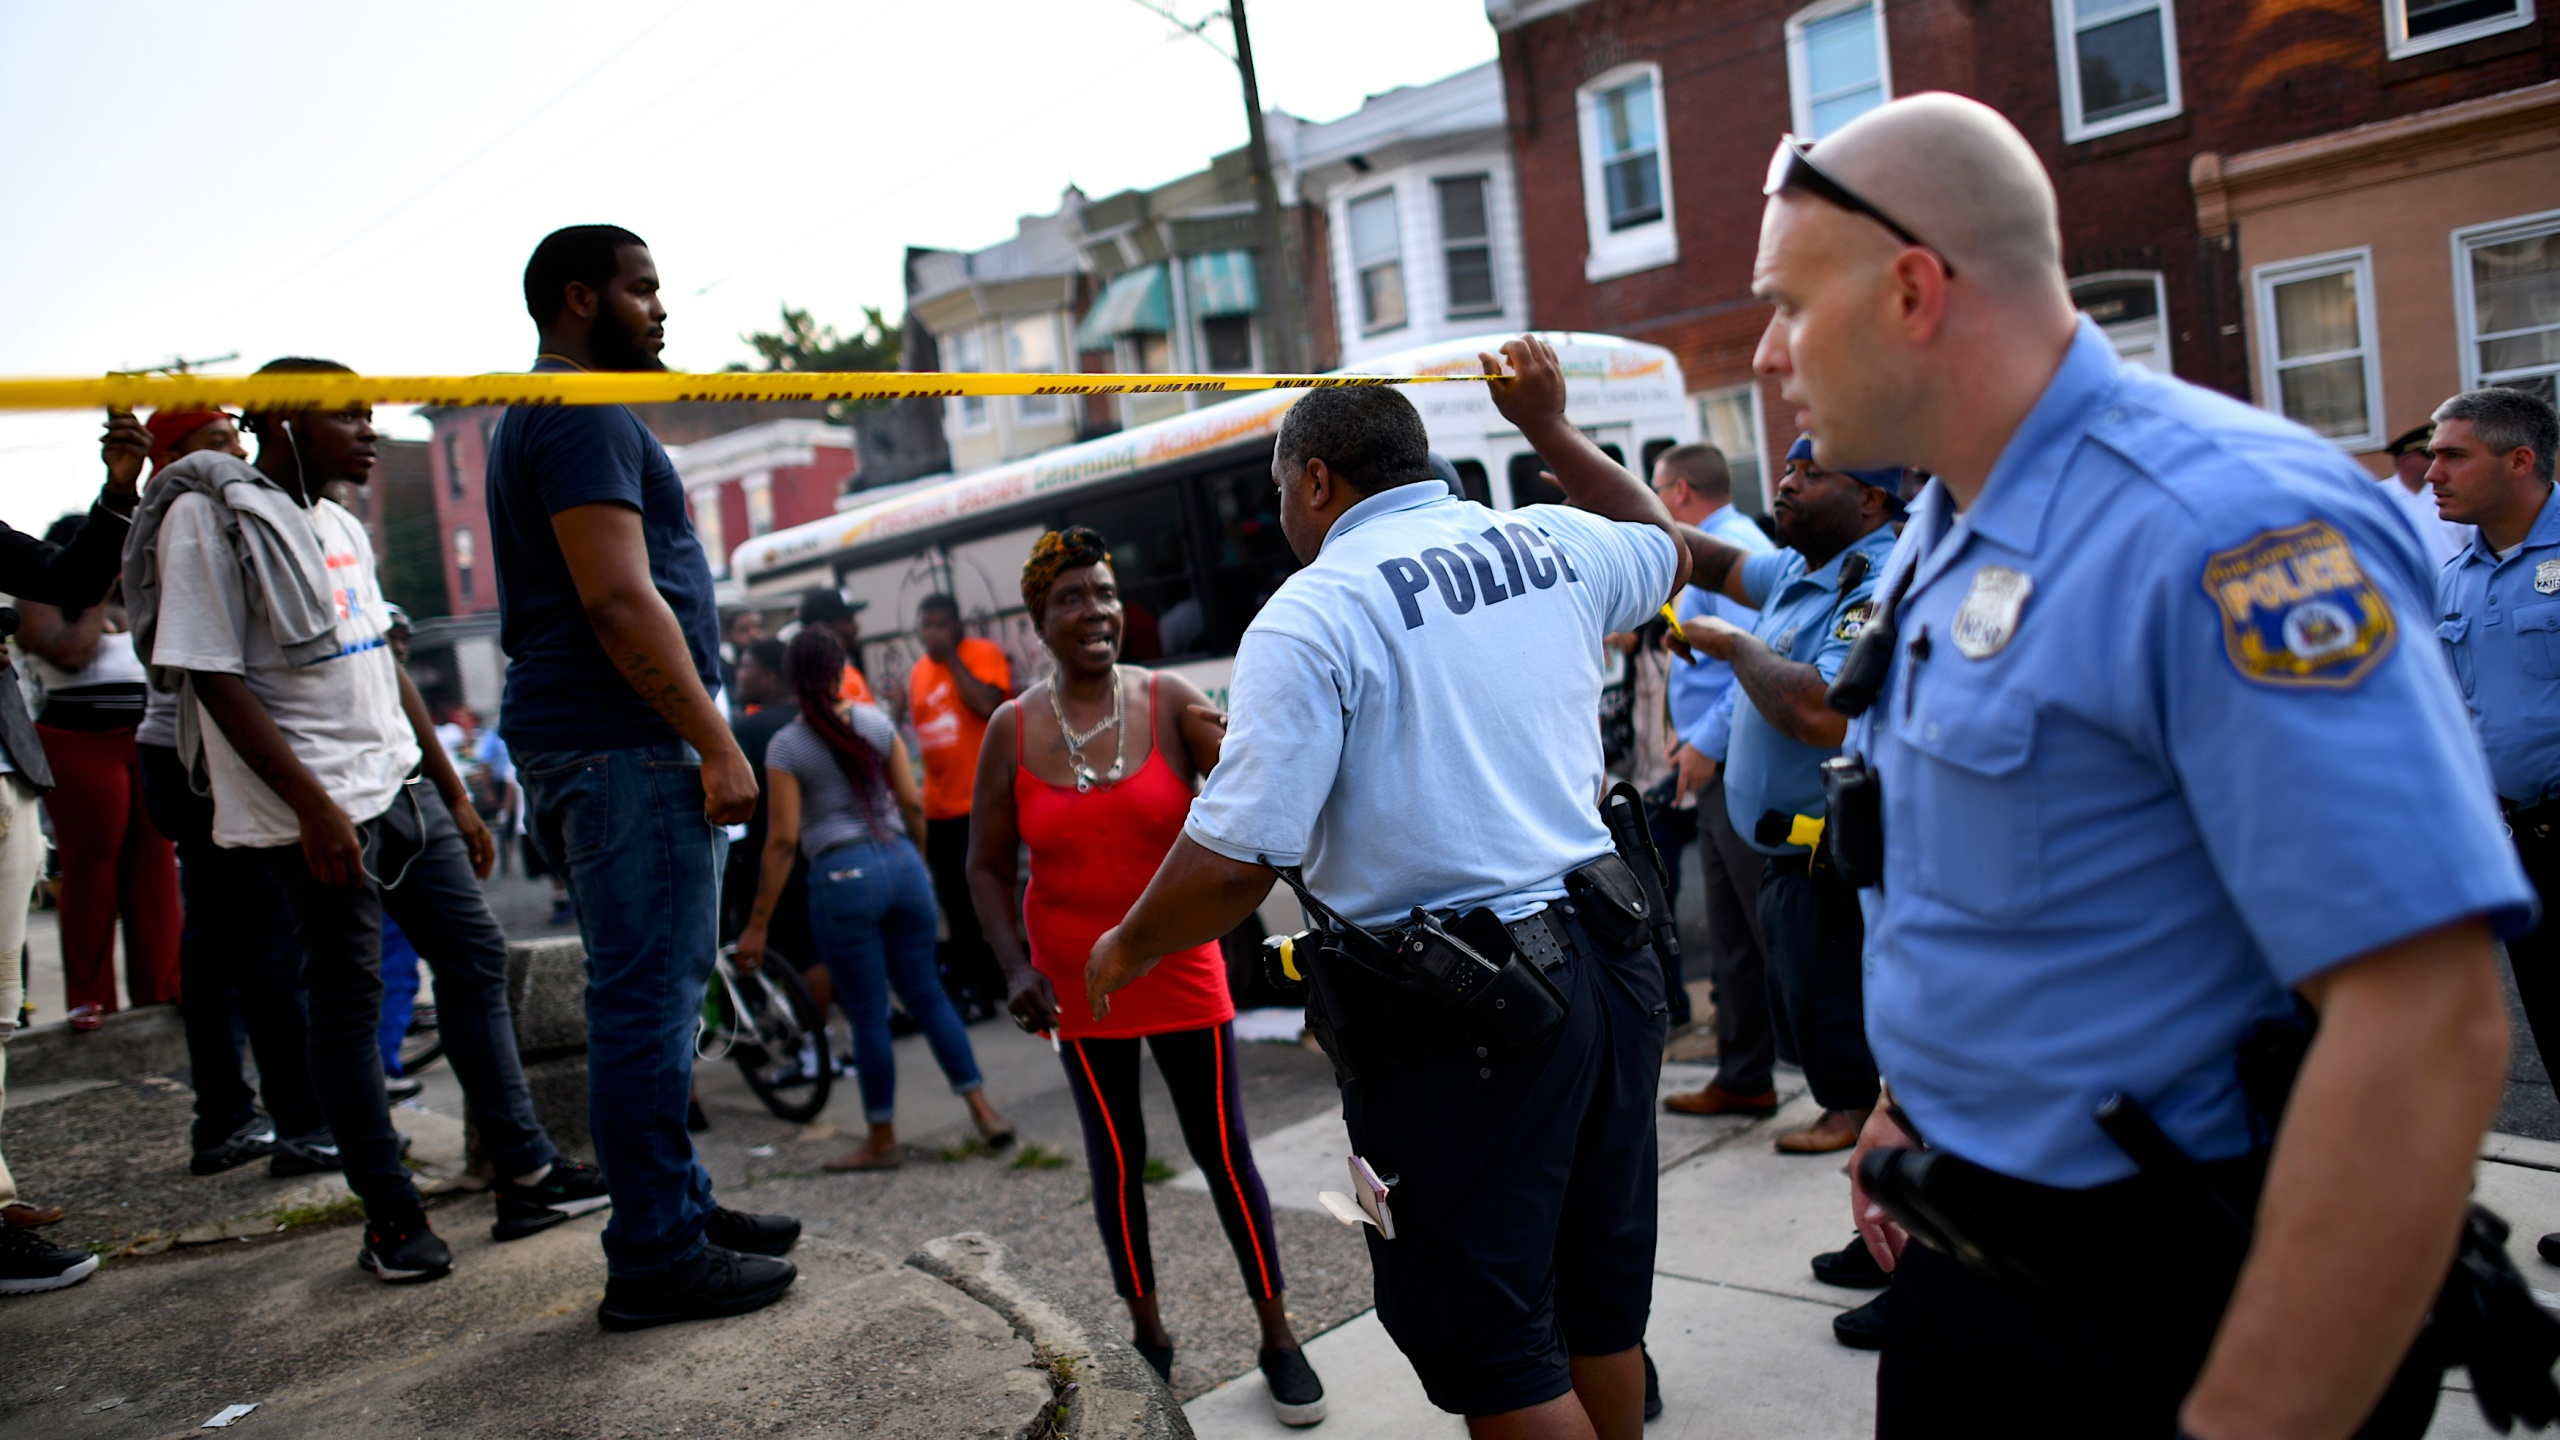 Police officers direct citizens to move back near the scene of a shooting in Philadelphia on Aug. 14, 2019. (Credit: Mark Makela / Getty Images)